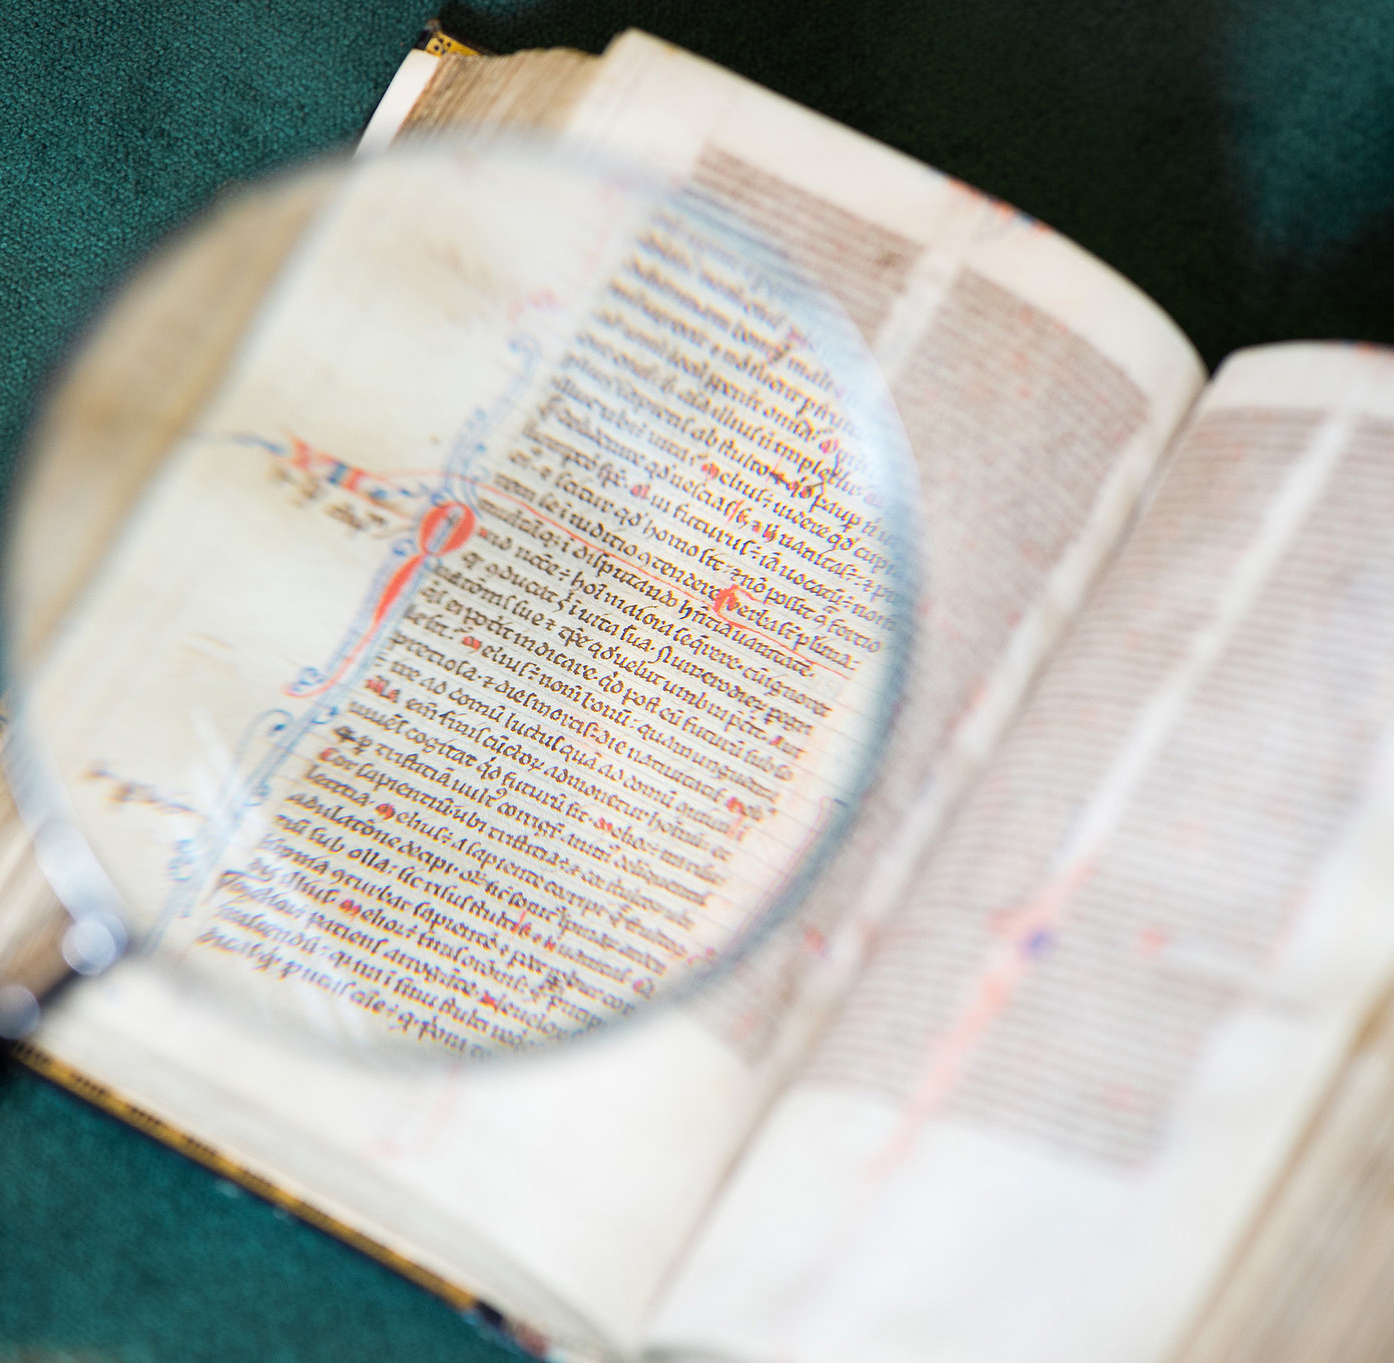 A treasured manuscript | UBC Library